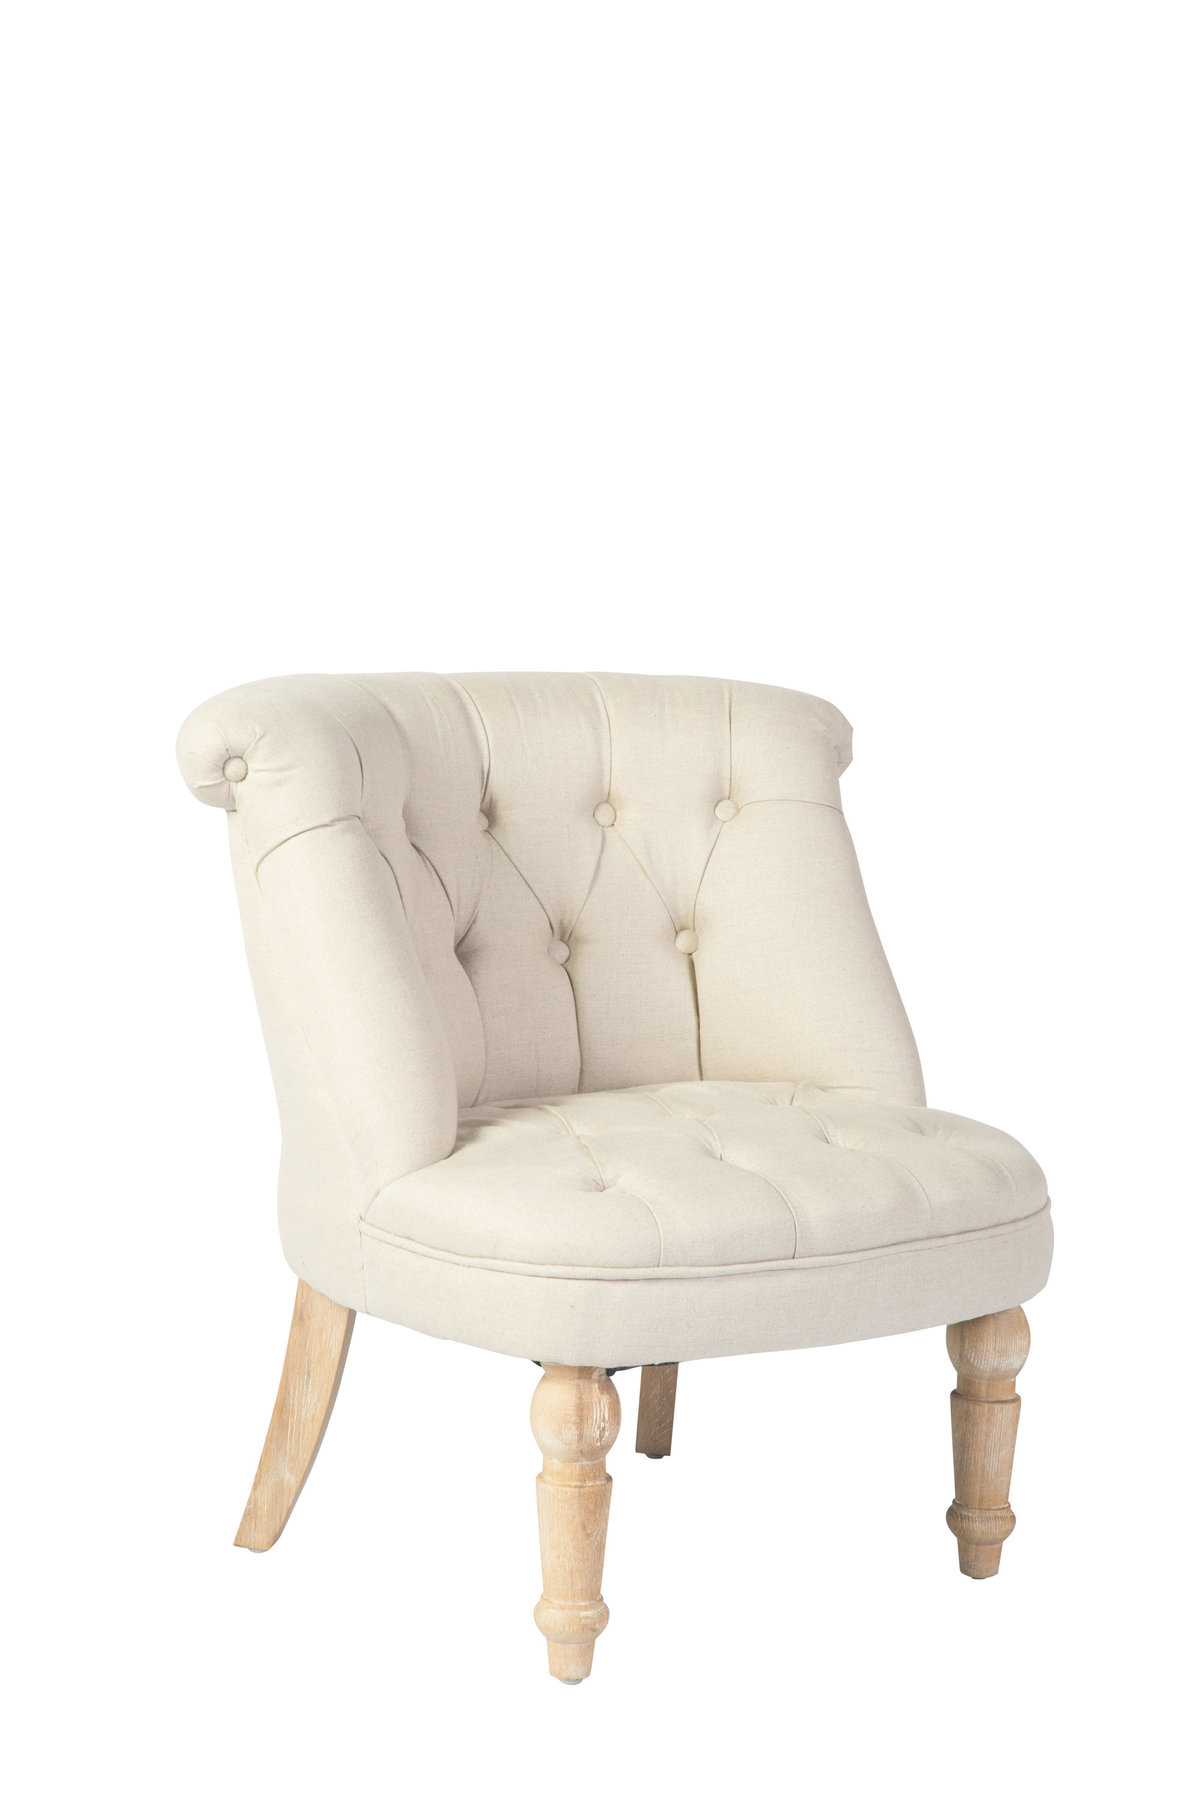 Siena Natural Linen Club Chair